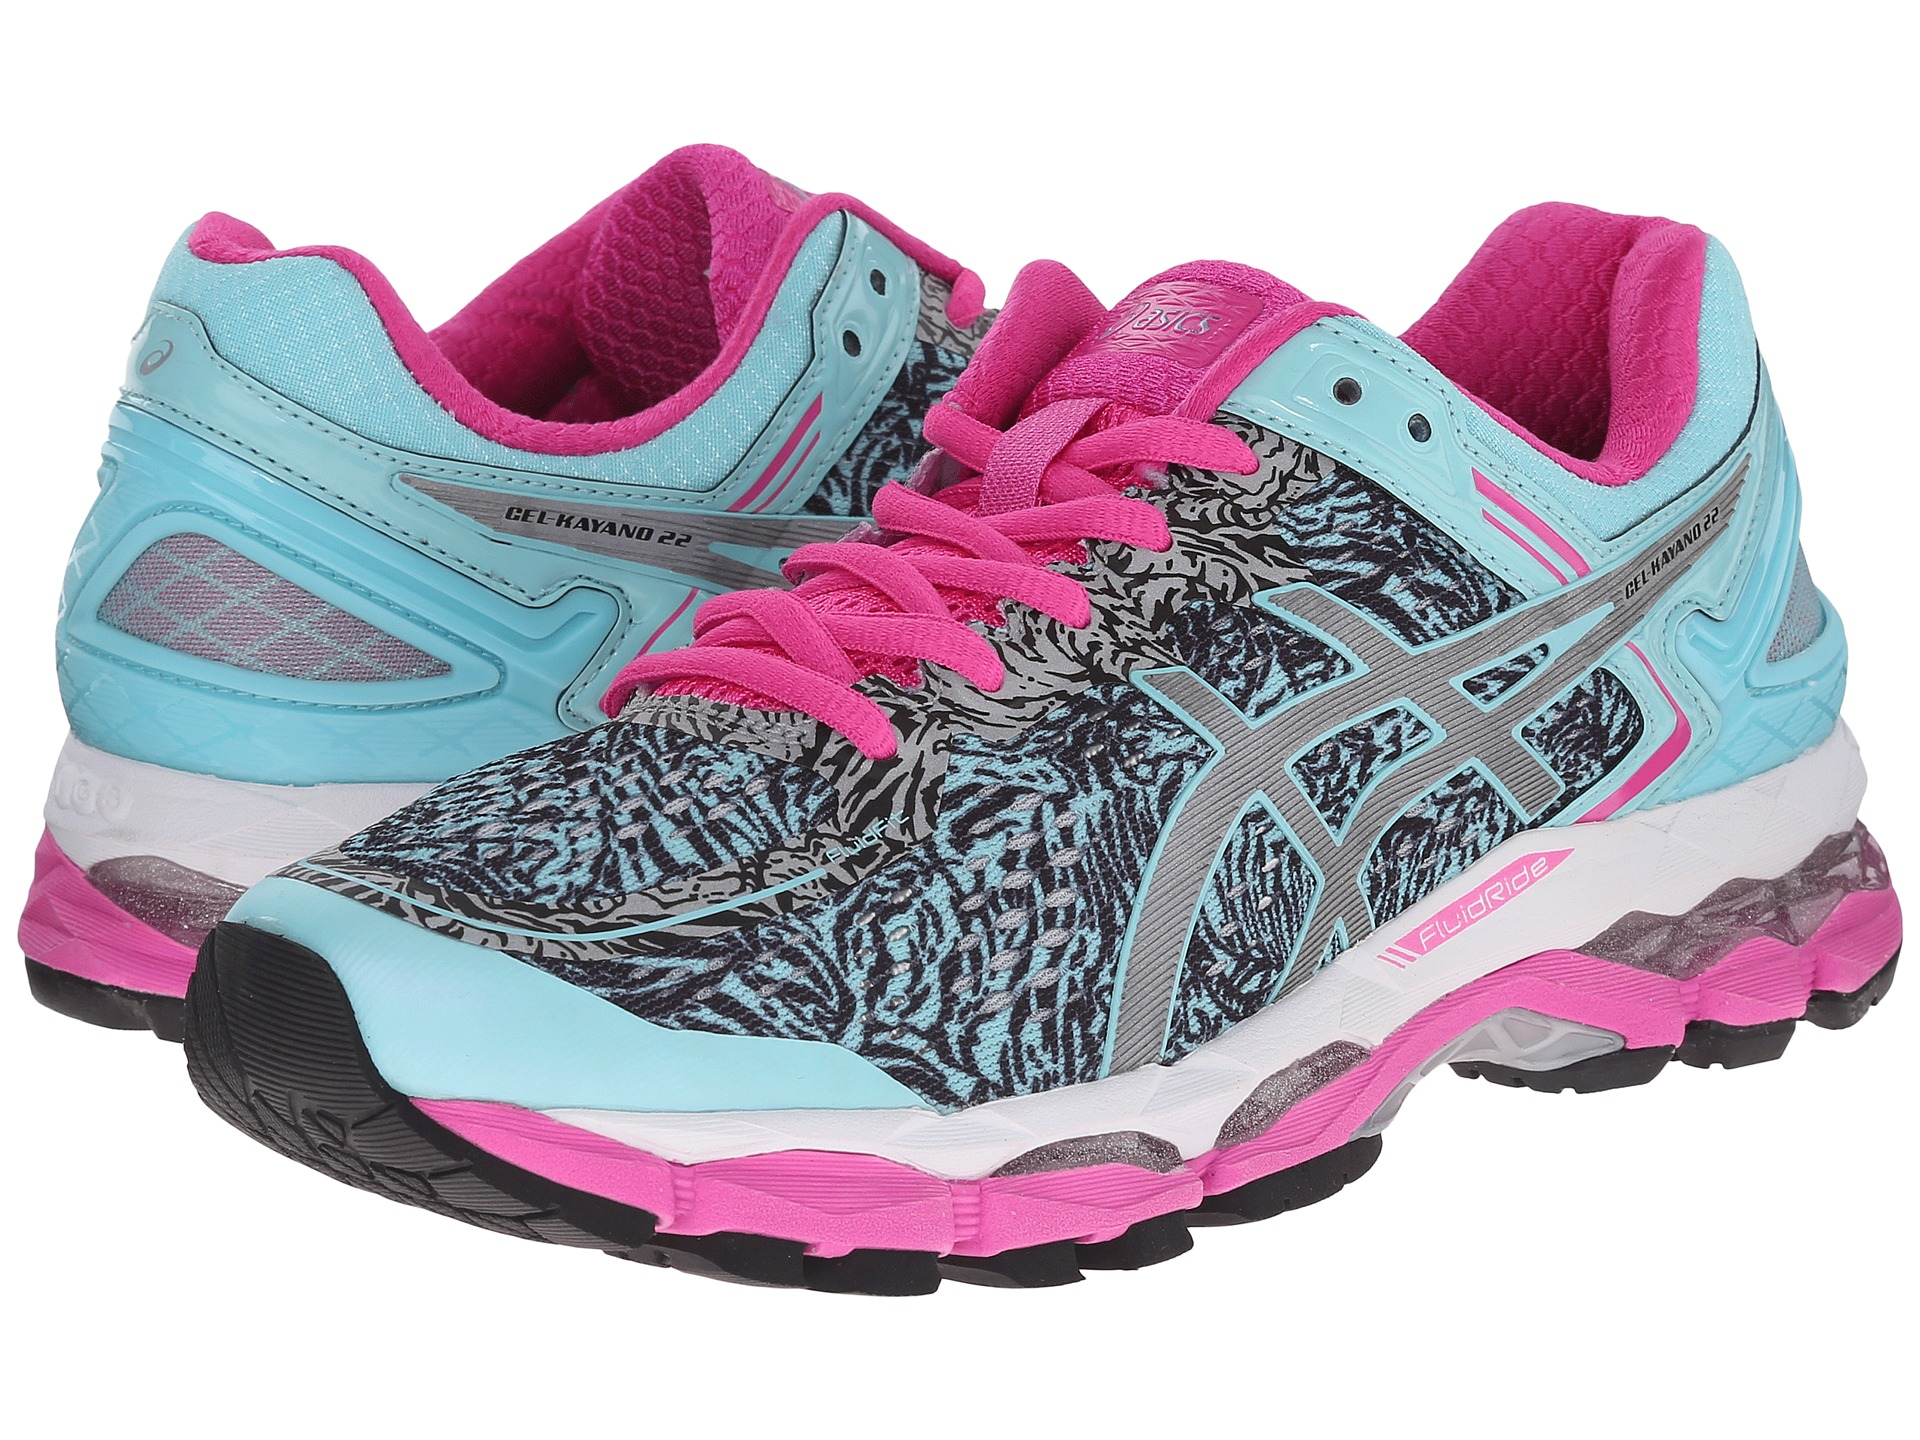 asics gel kayano 22 lite show aqua splash silver pink glow free shipping both ways. Black Bedroom Furniture Sets. Home Design Ideas